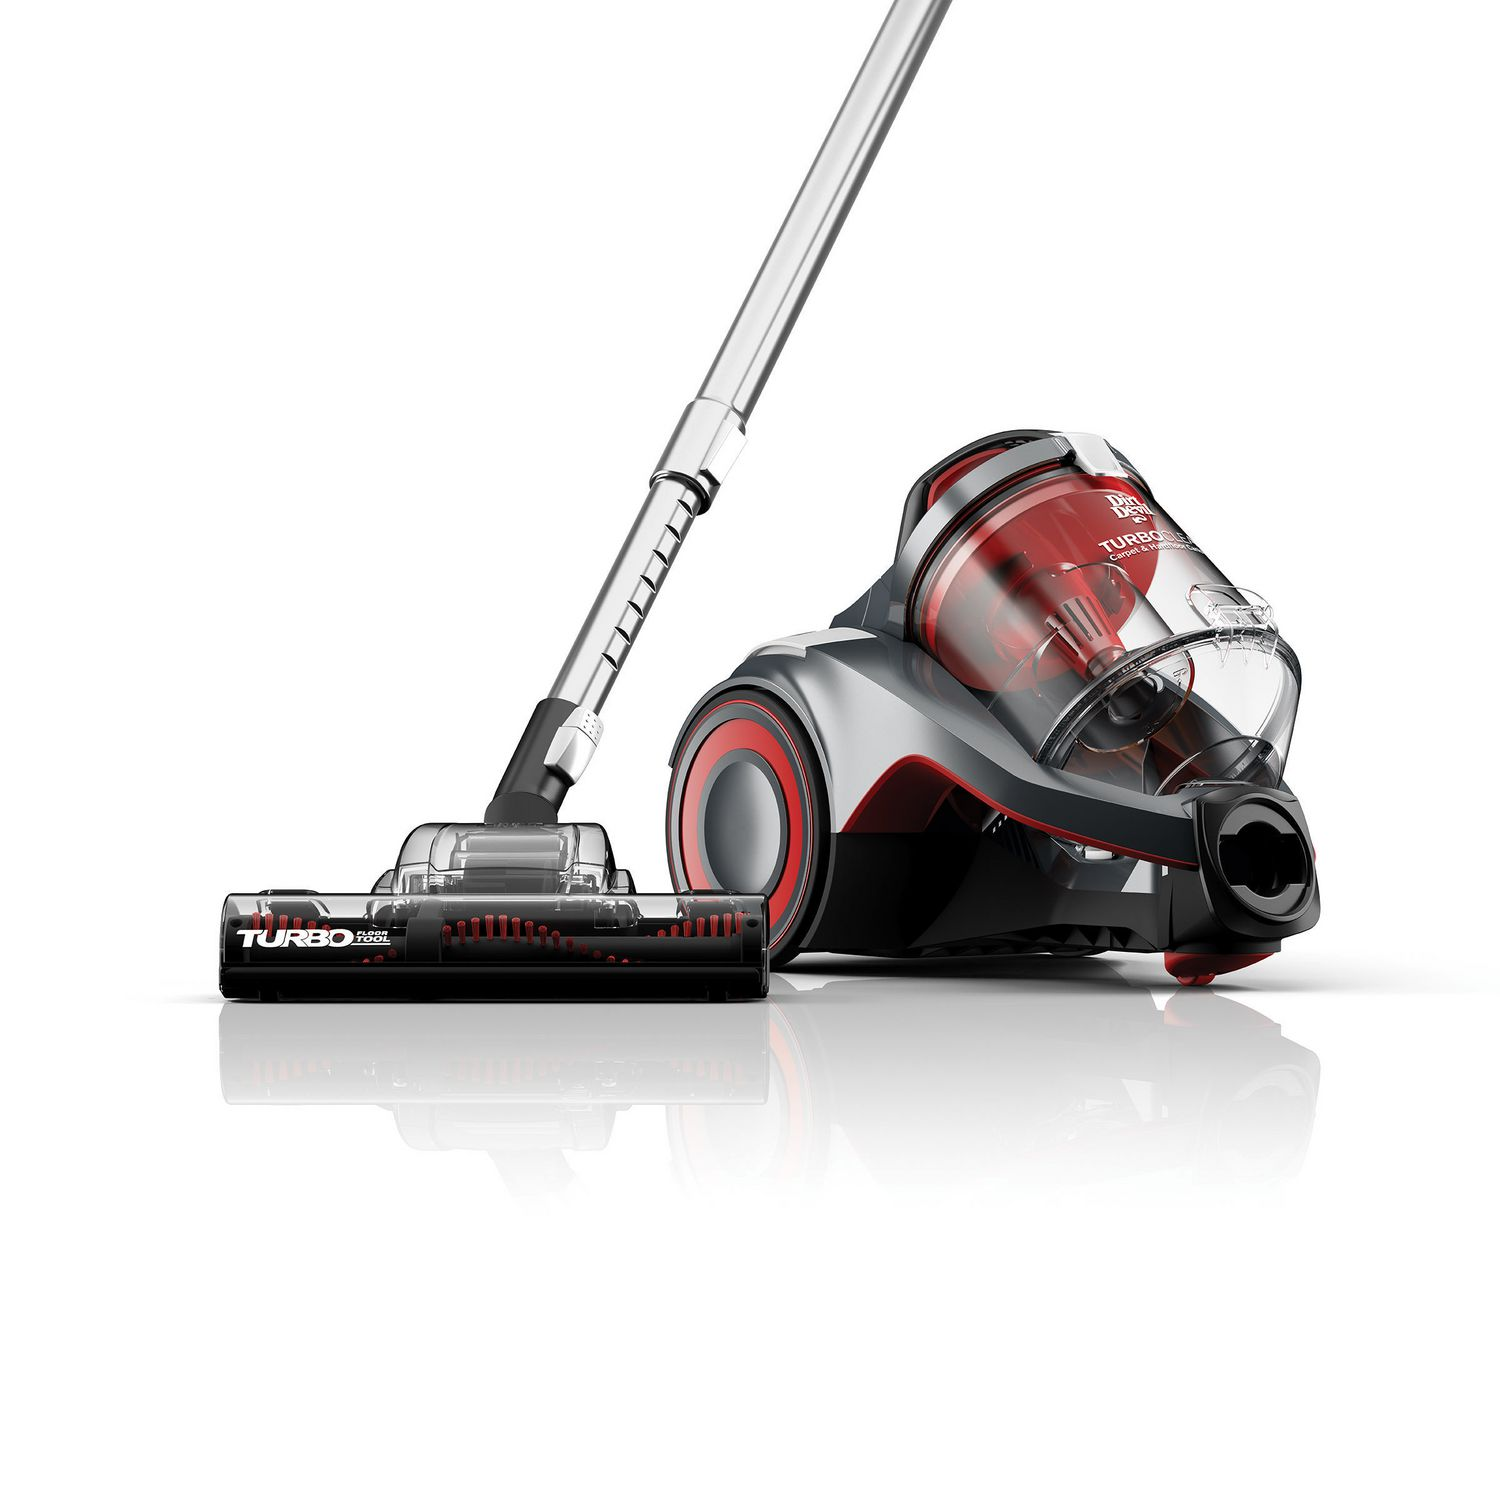 dirt devil turbo clean carpet u0026 hard floor cyclonic canister vacuum walmart canada - Canister Vacuum Reviews